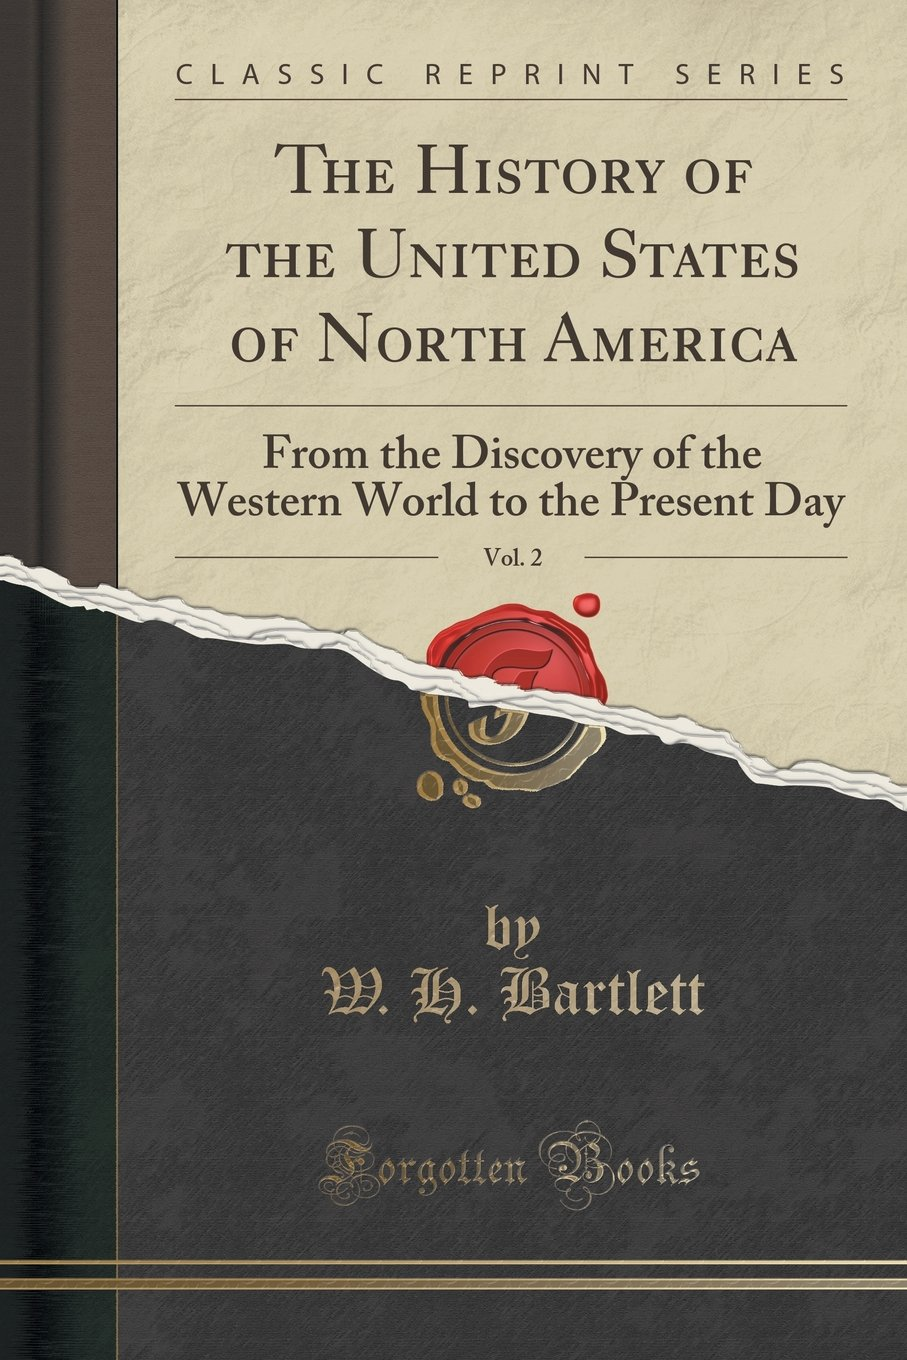 Download The History of the United States of North America, Vol. 2: From the Discovery of the Western World to the Present Day (Classic Reprint) PDF